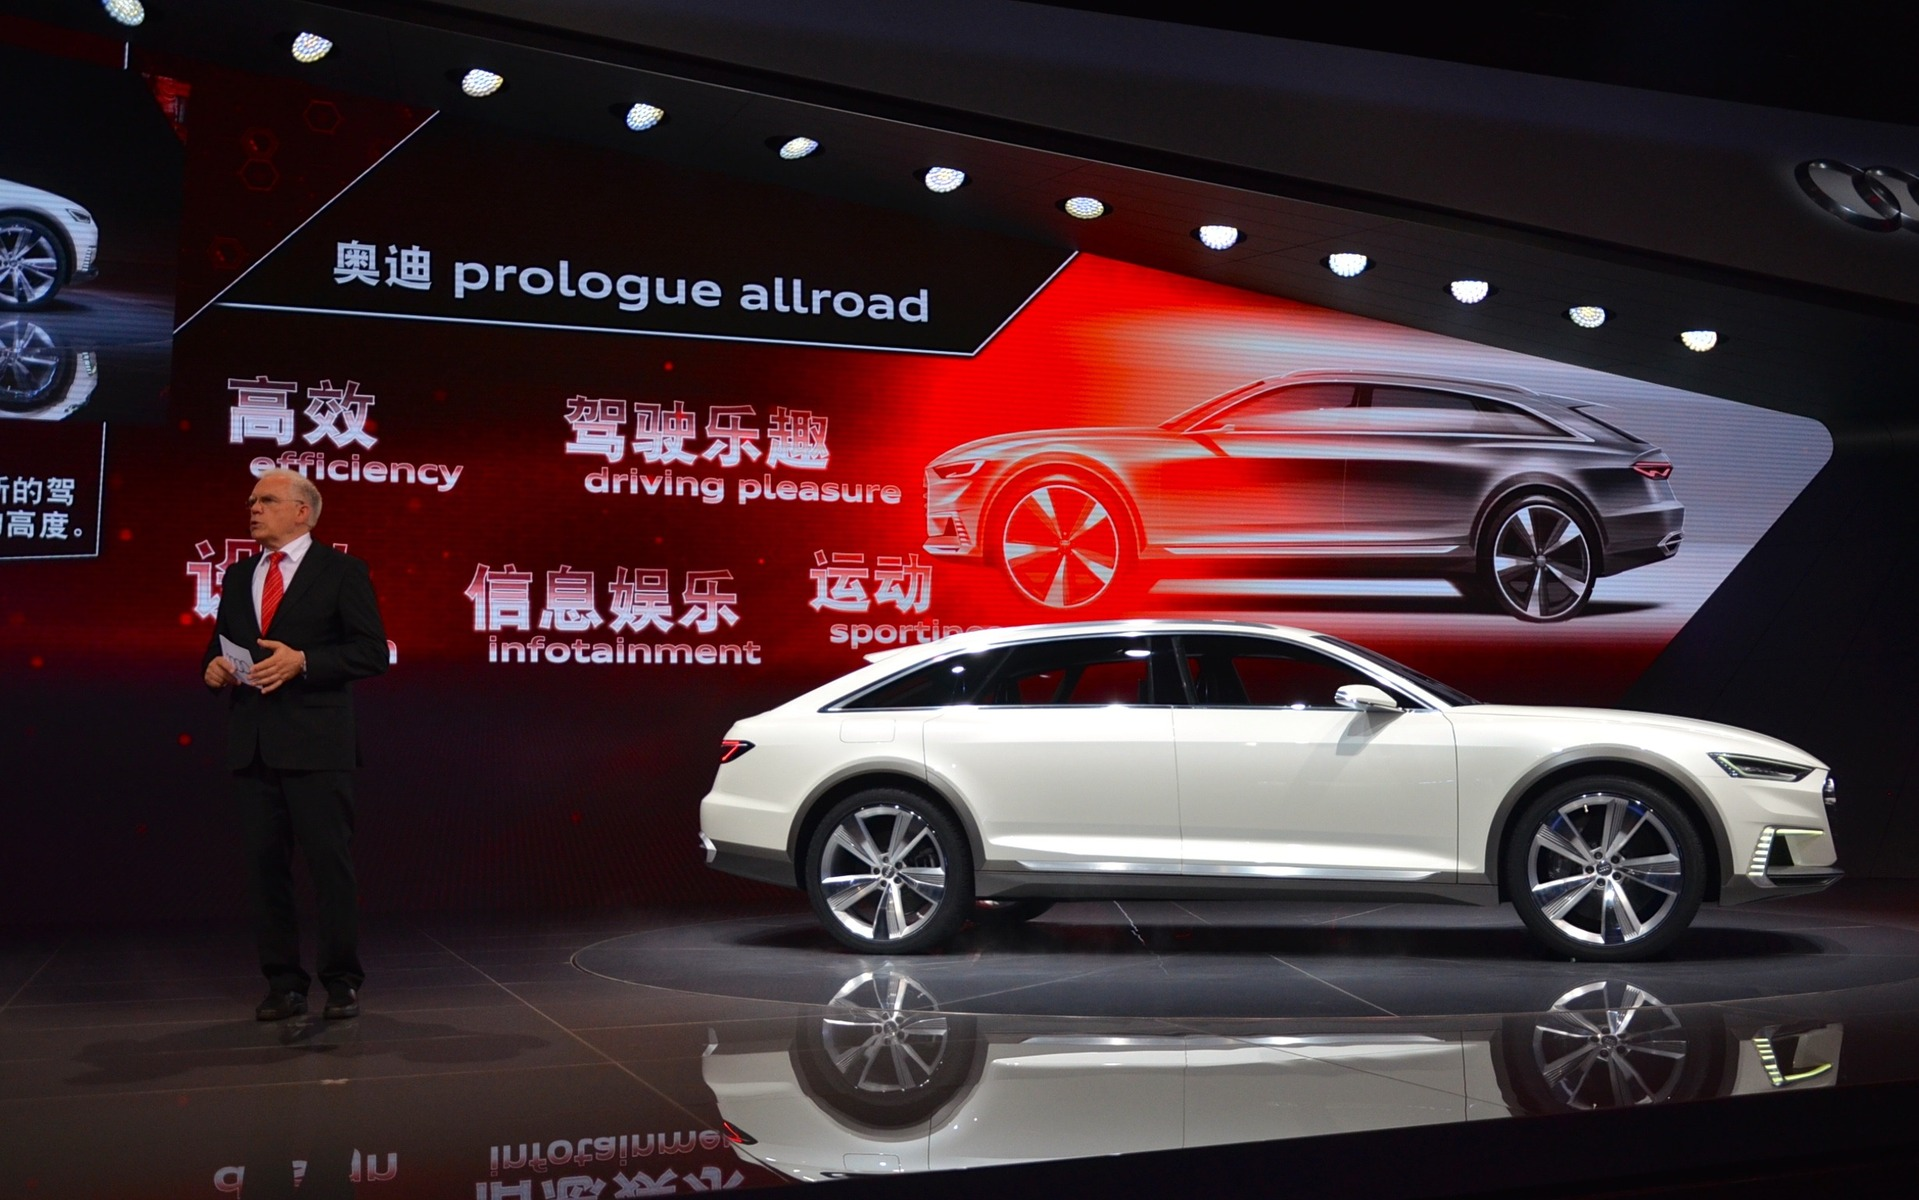 Premi re mondiale du audi prologue allroad concept au salon de shanghai guide auto - Concept salon de the ...